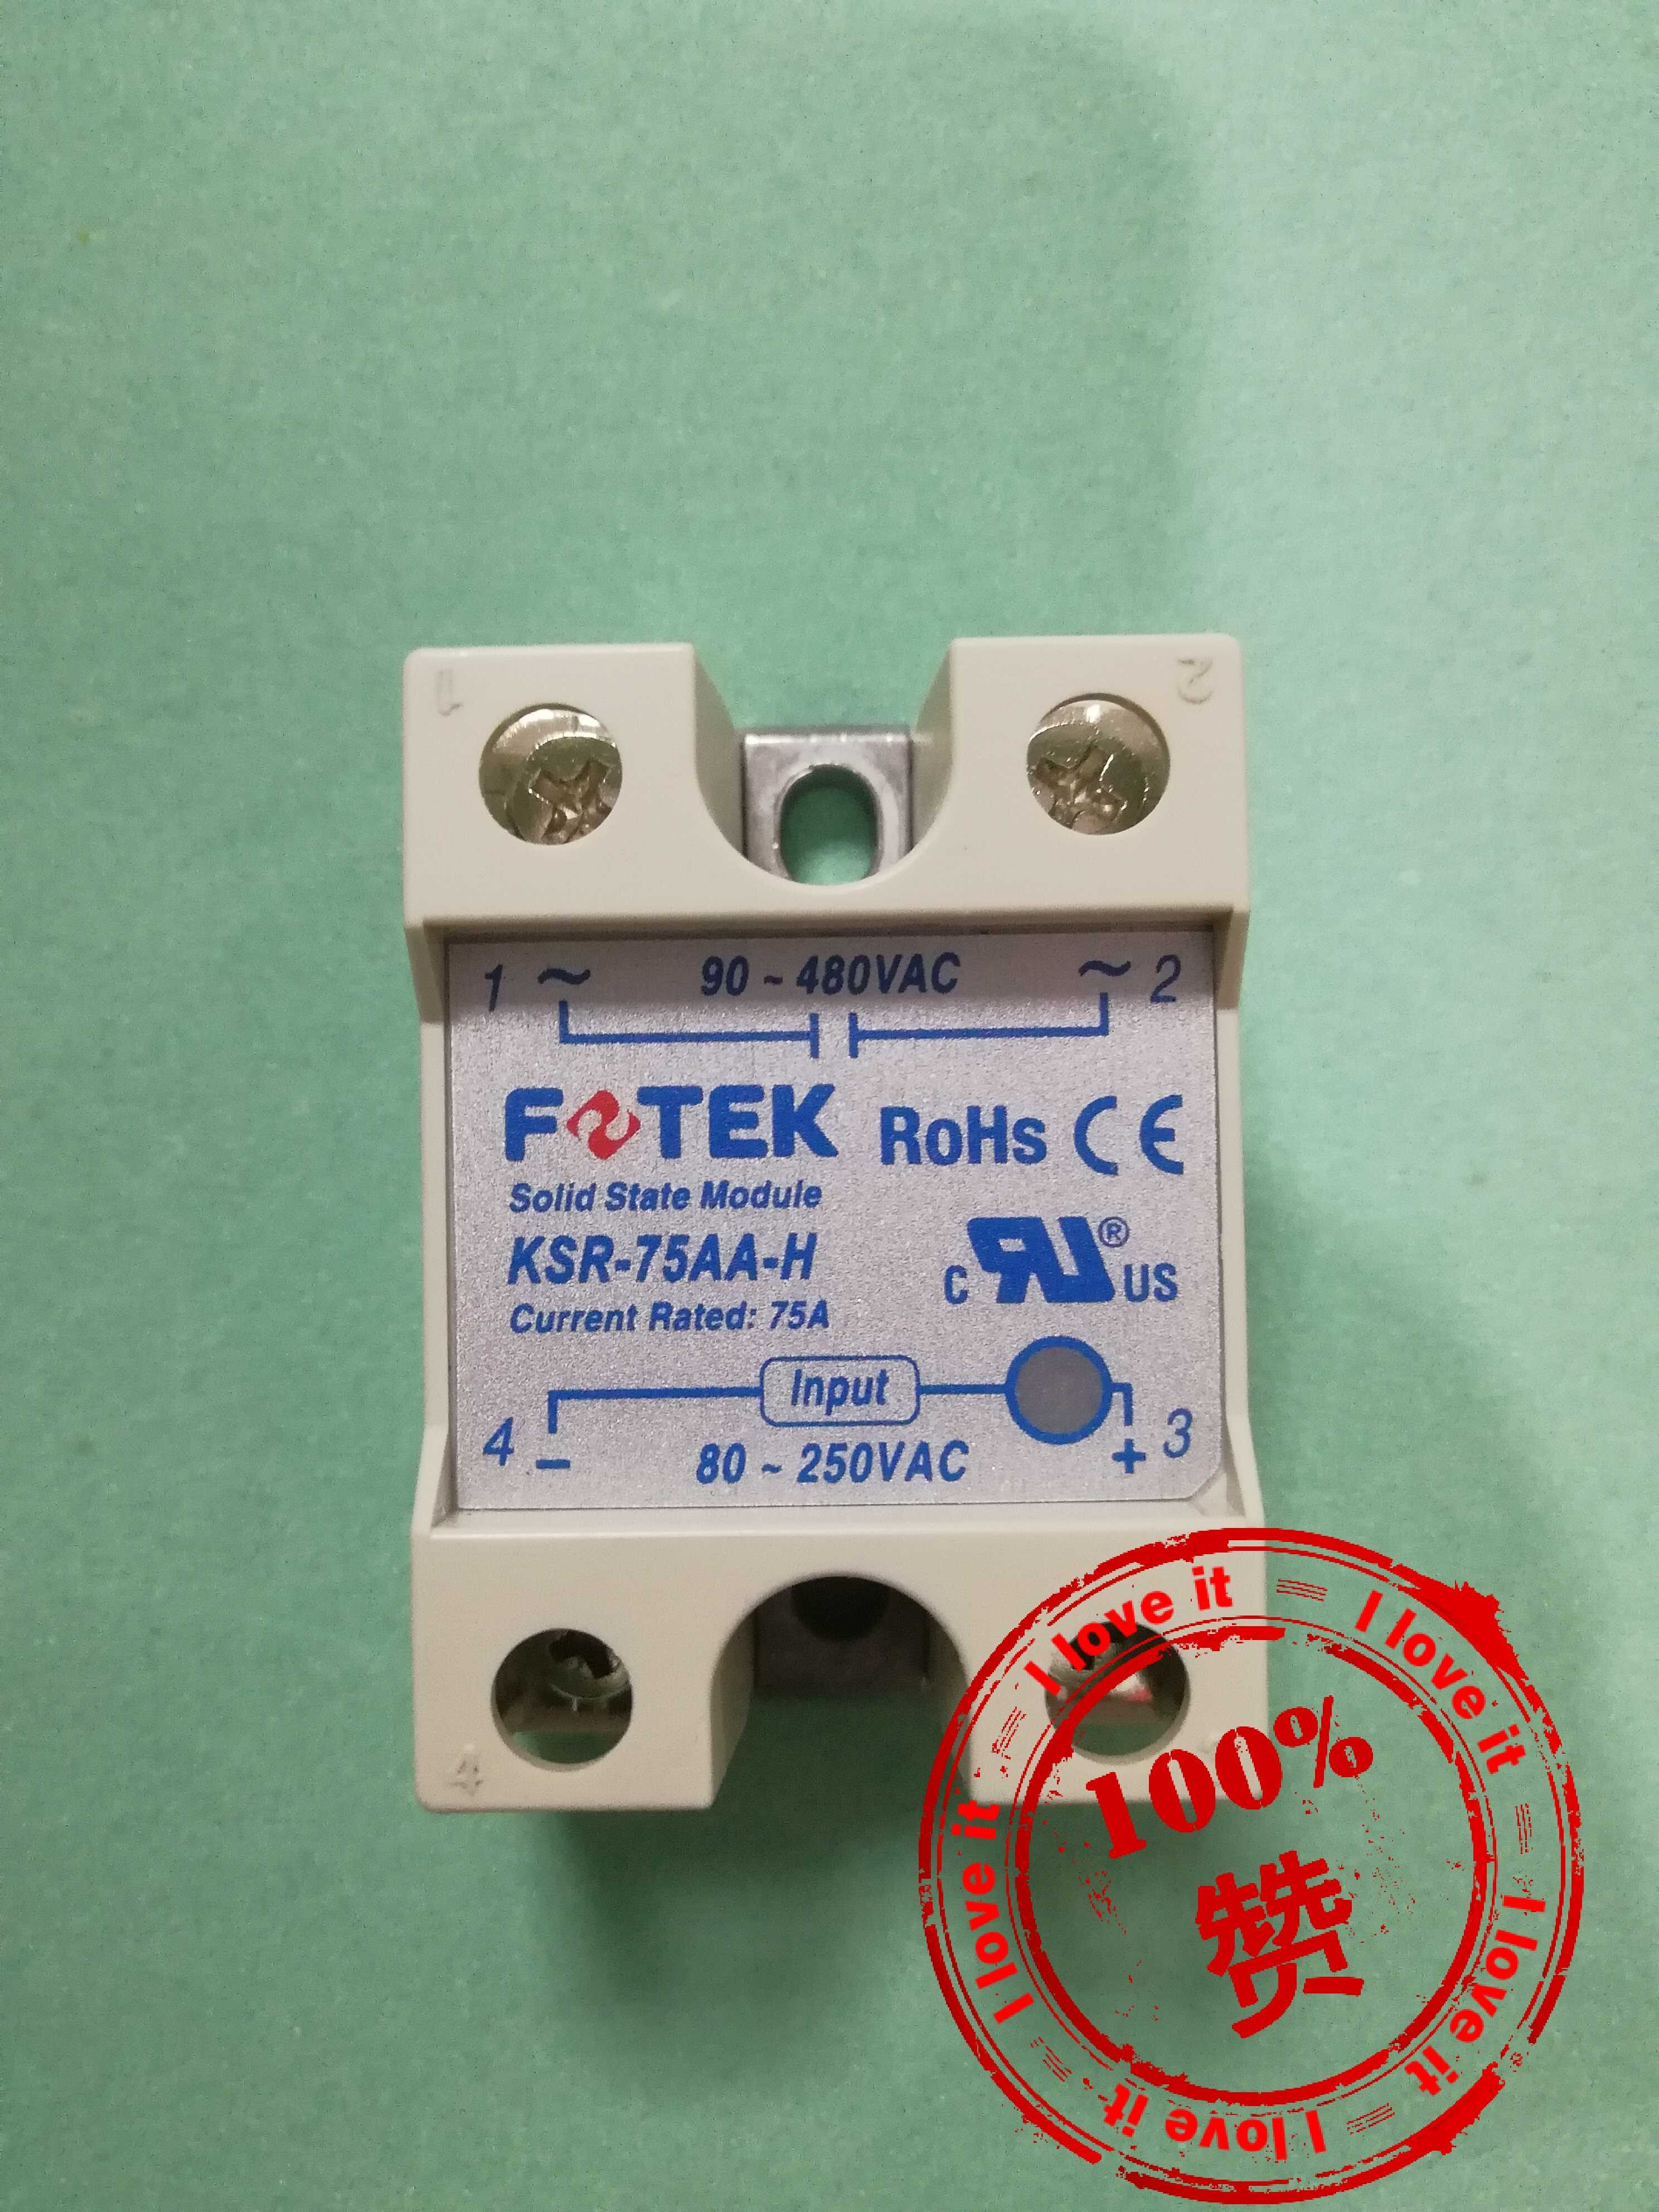 New single-phase economical solid-state relay KSR-75AA-HNew single-phase economical solid-state relay KSR-75AA-H